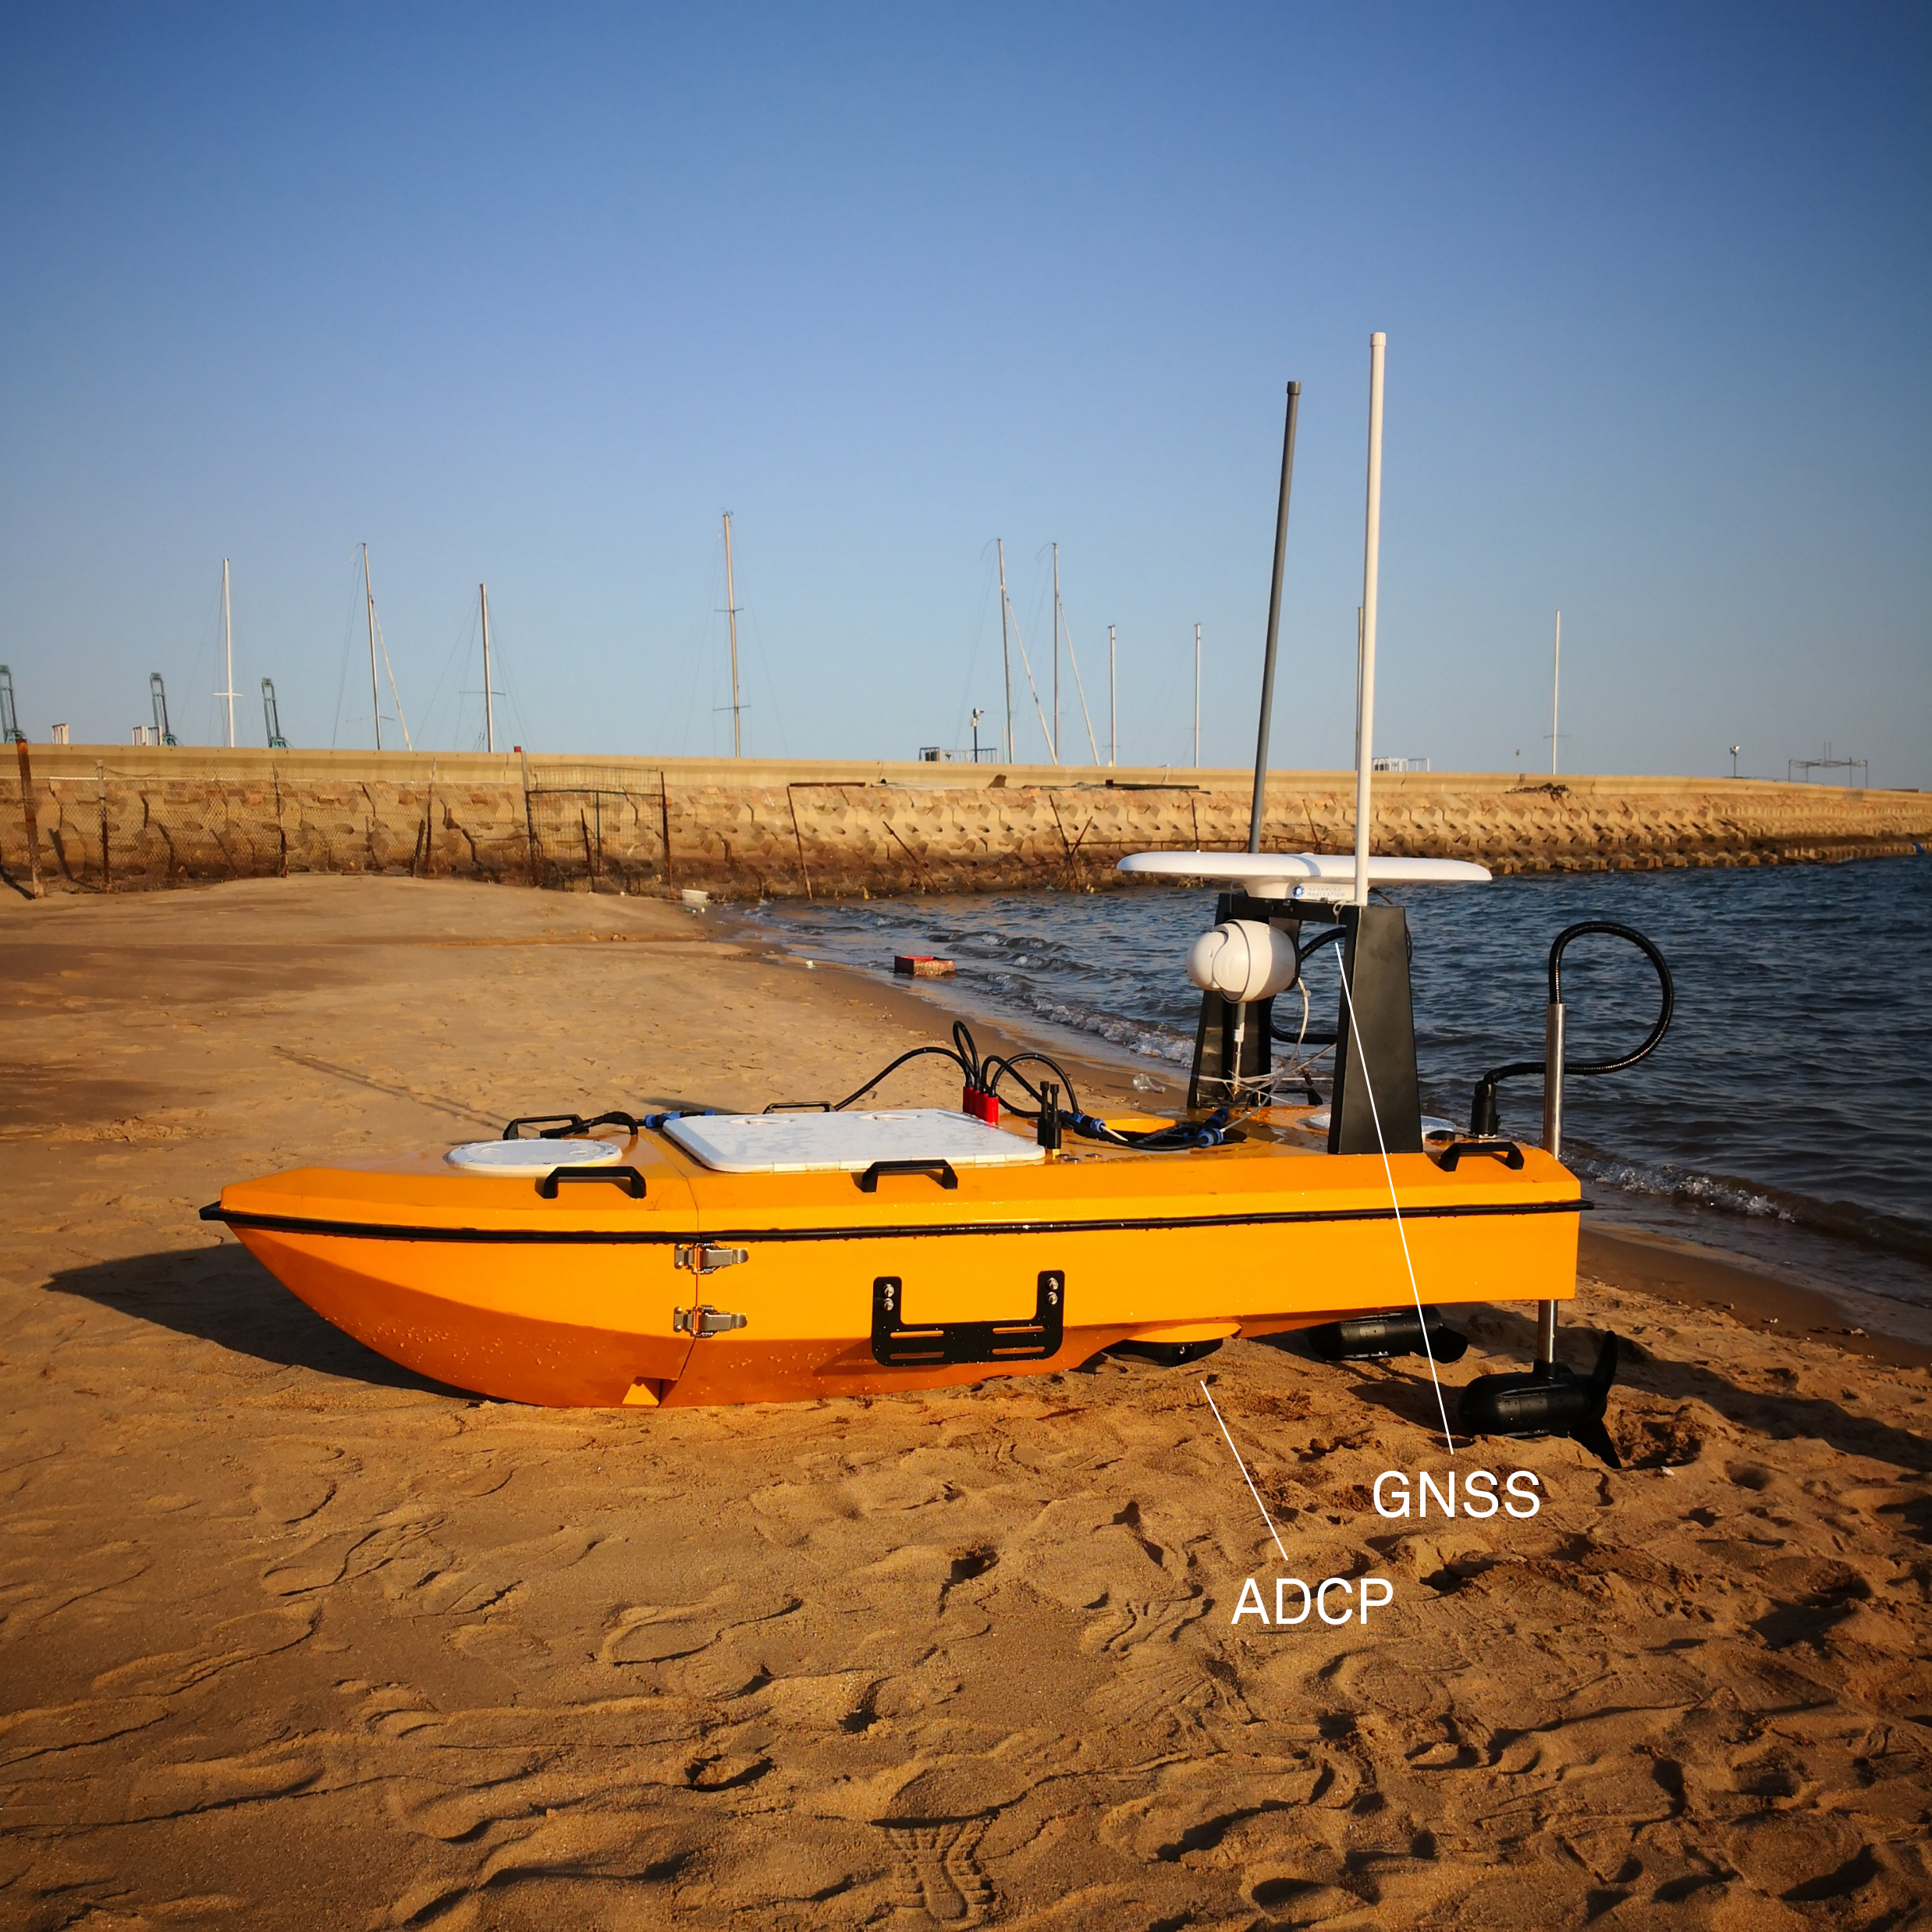 USV equipped with the Signature VM Ocean system and the Signature Service software for USVs and ASVs to measure water current and direction.